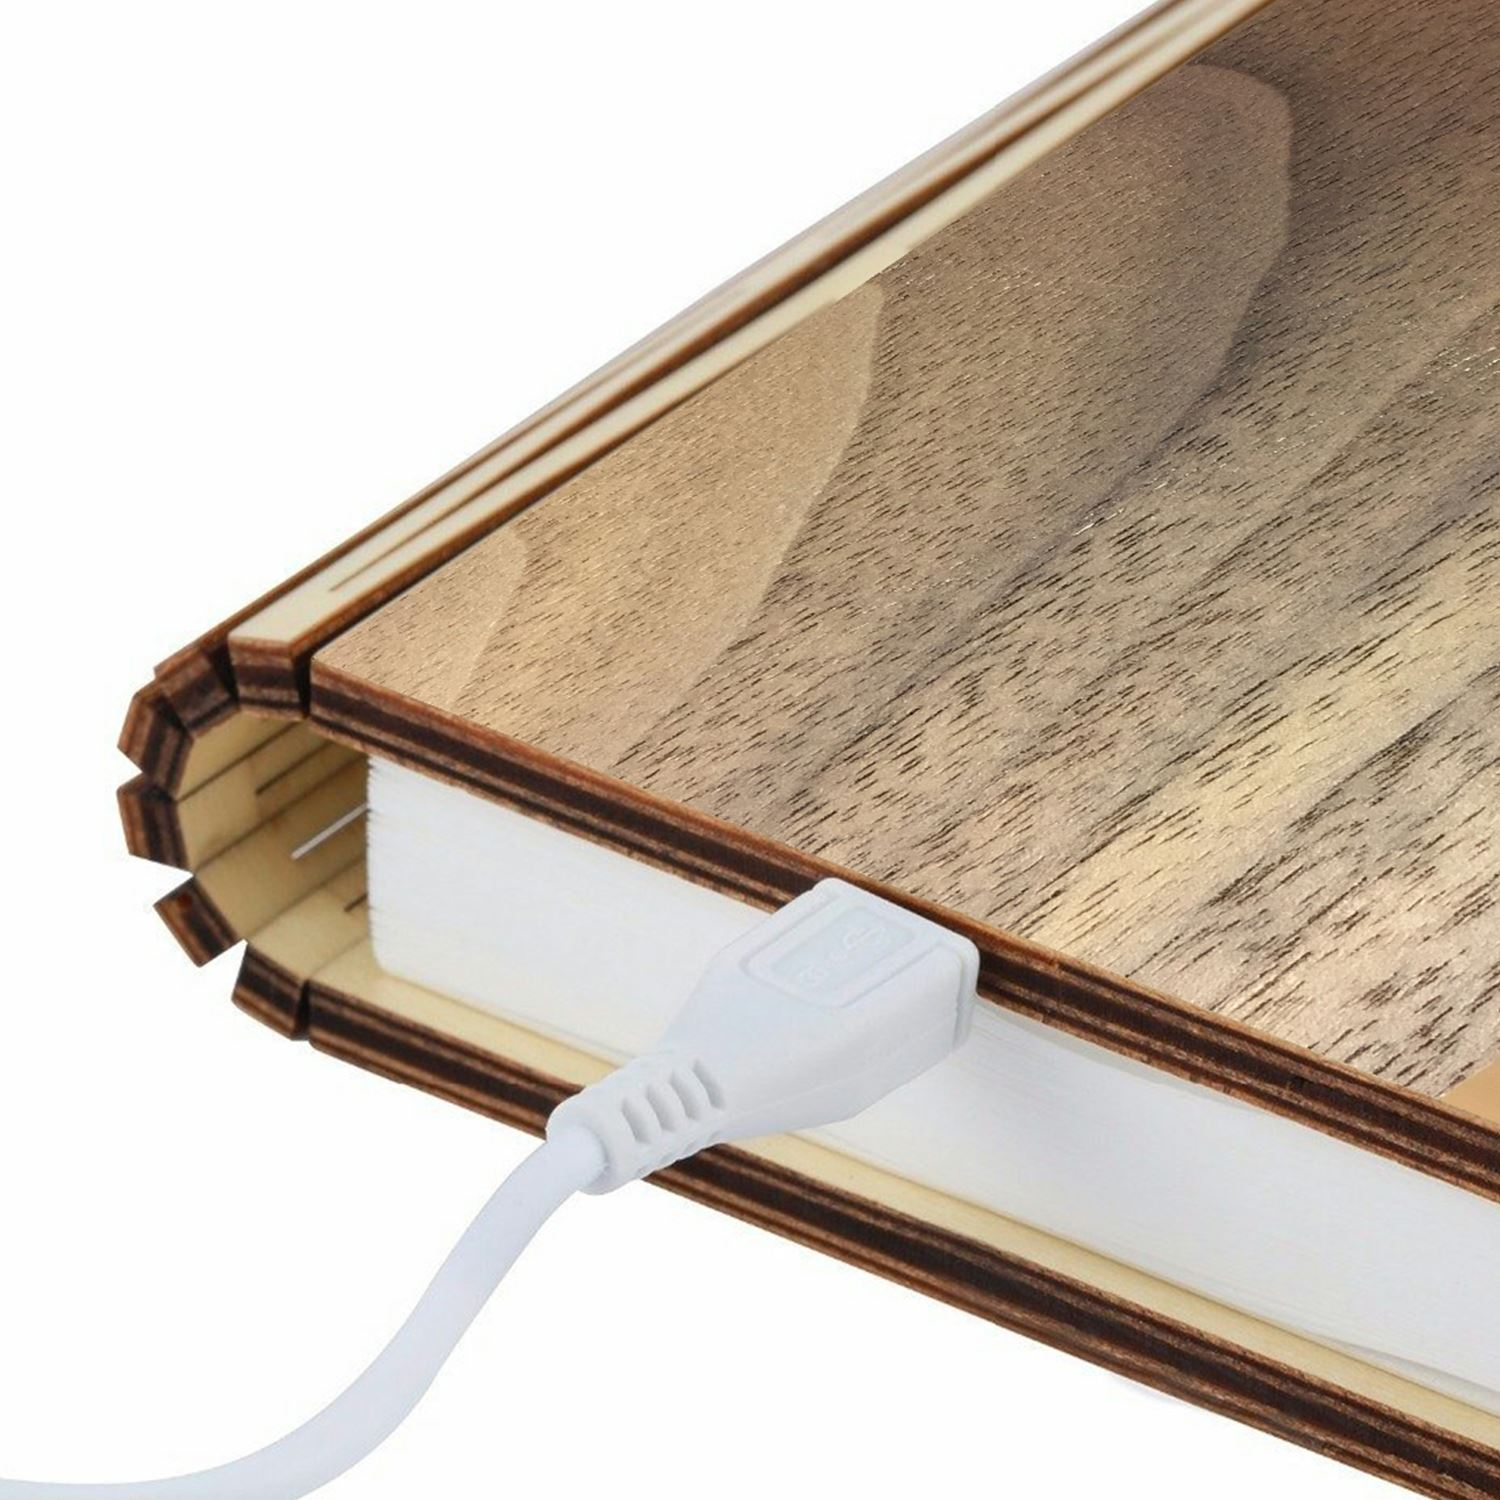 LED-Wood-Leather-Effect-Book-Desk-Lamp-Gingko-USB-Rechargeable-360-Light miniatuur 34